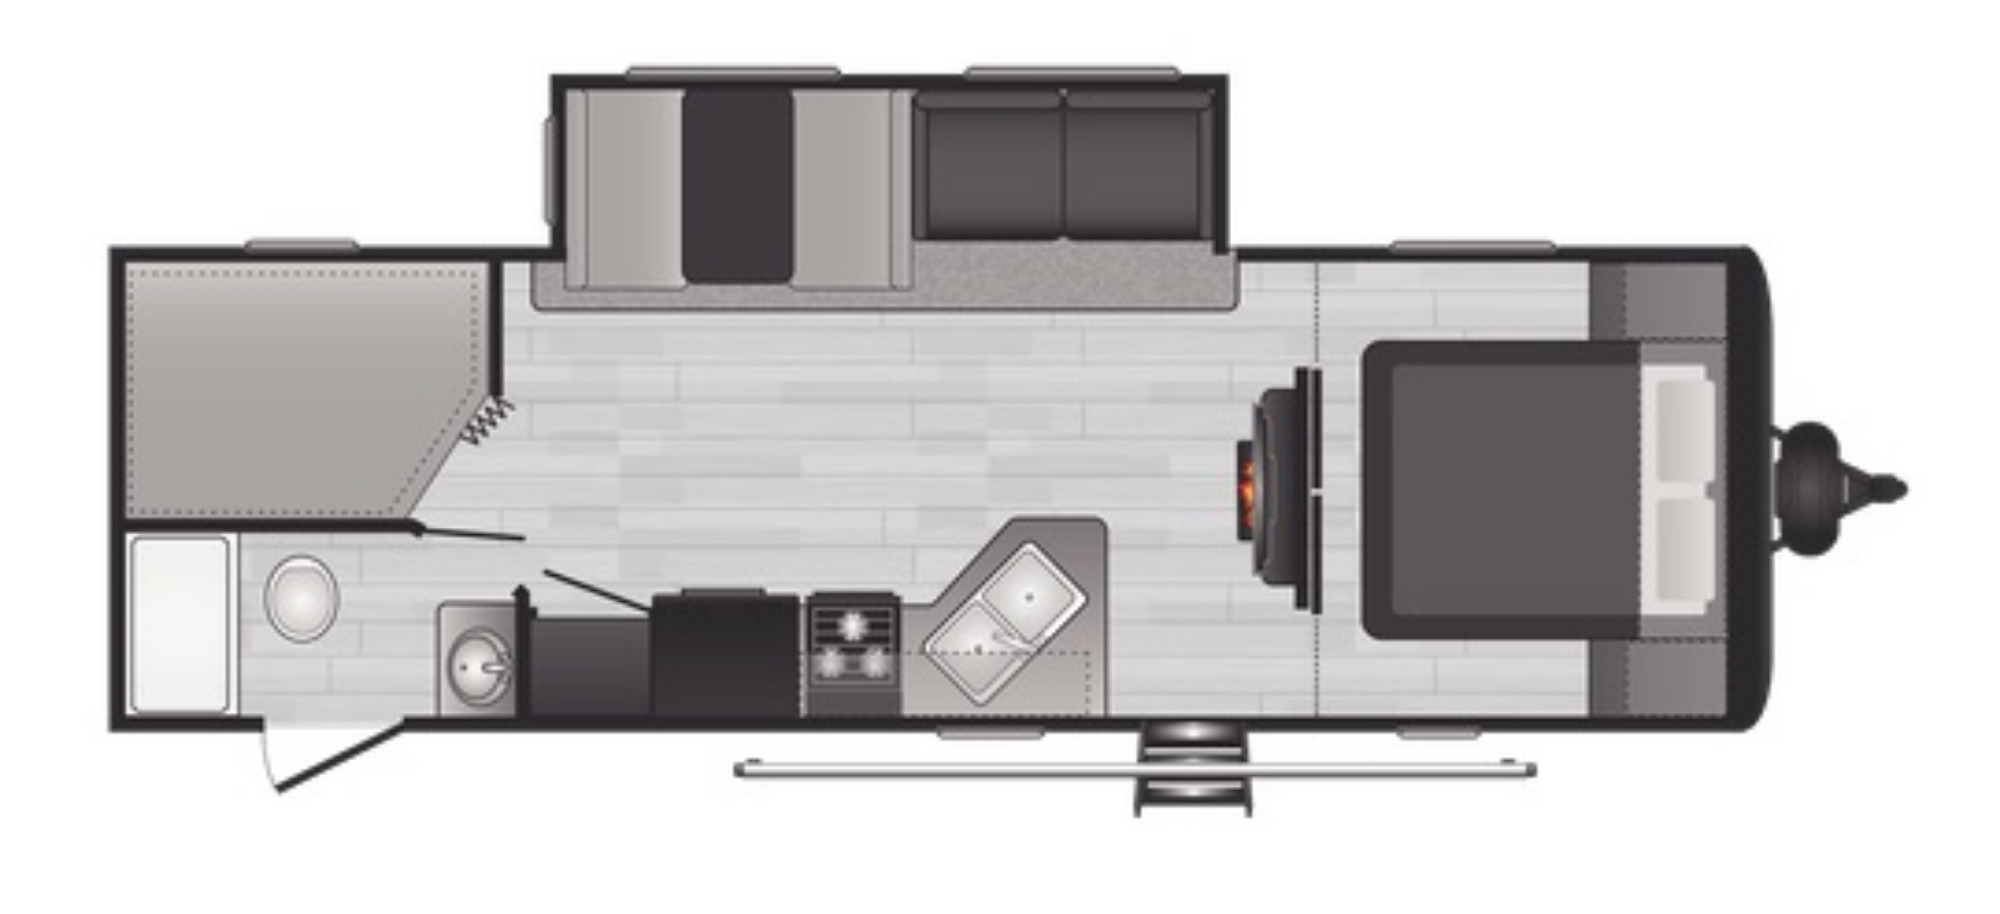 View Floor Plan for 2022 KEYSTONE HIDEOUT 272BH